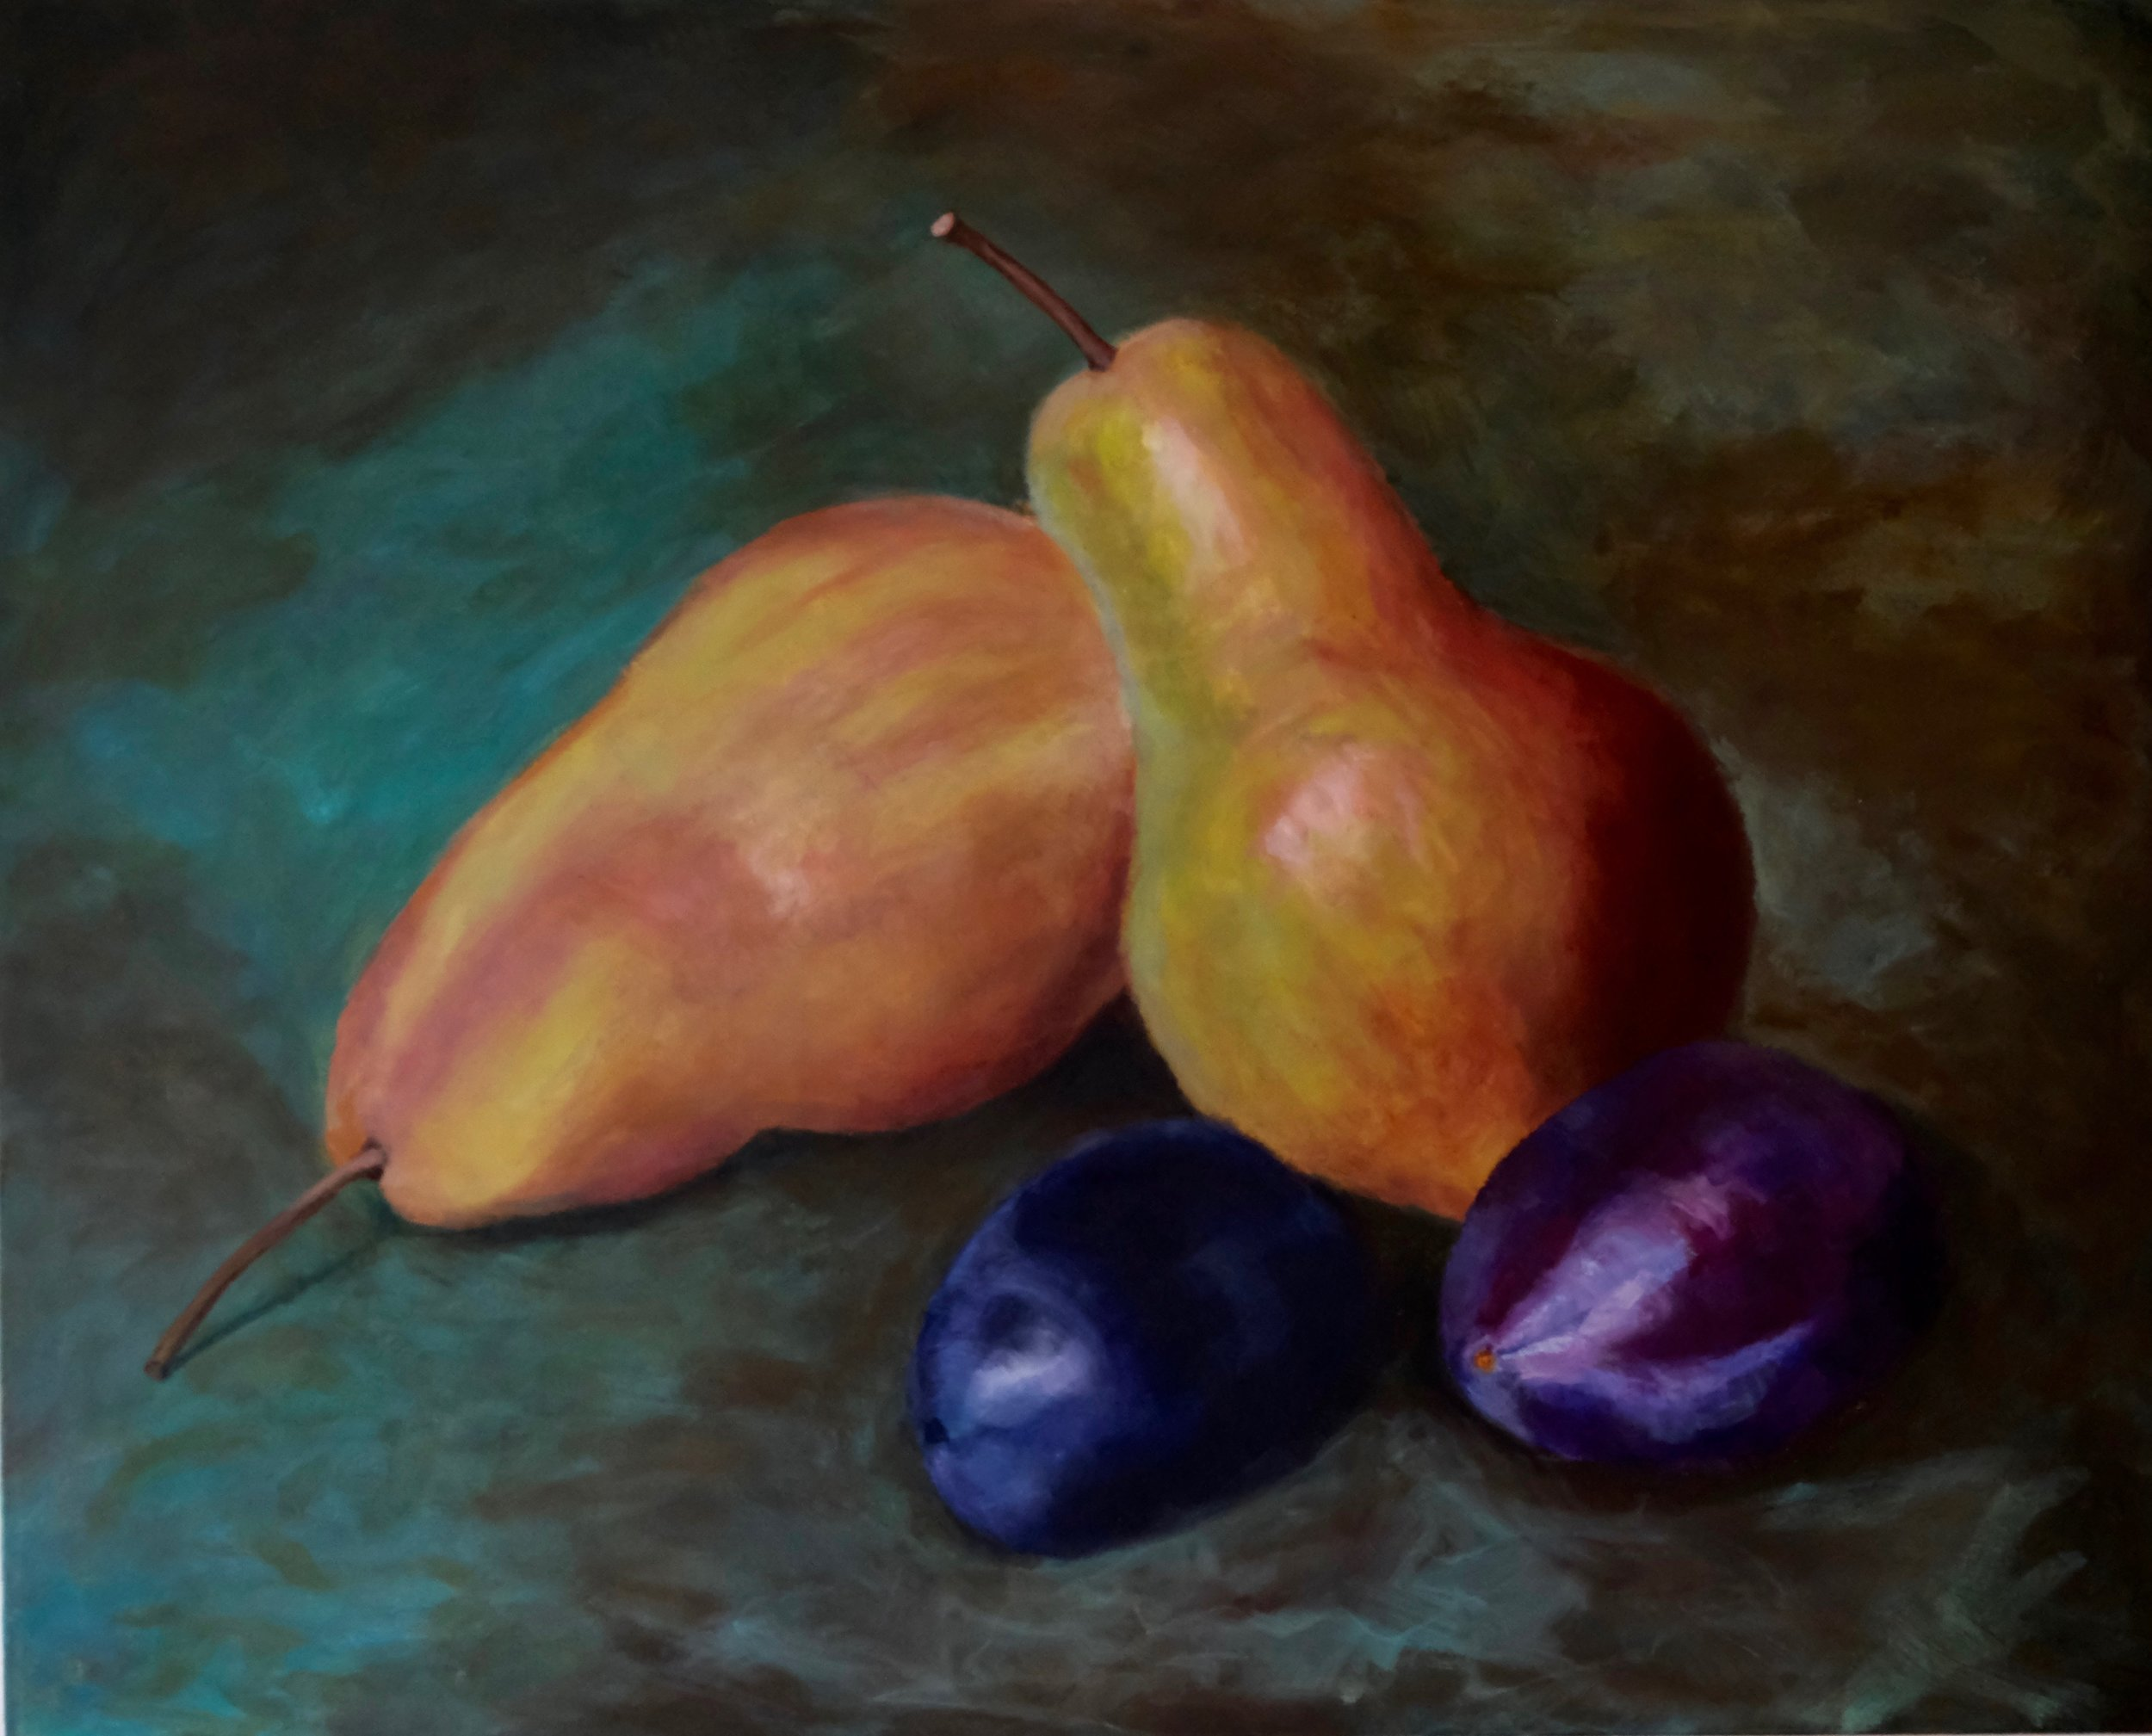 Pears & Plums , 2019, acrylic on canvas, 24x30 inches